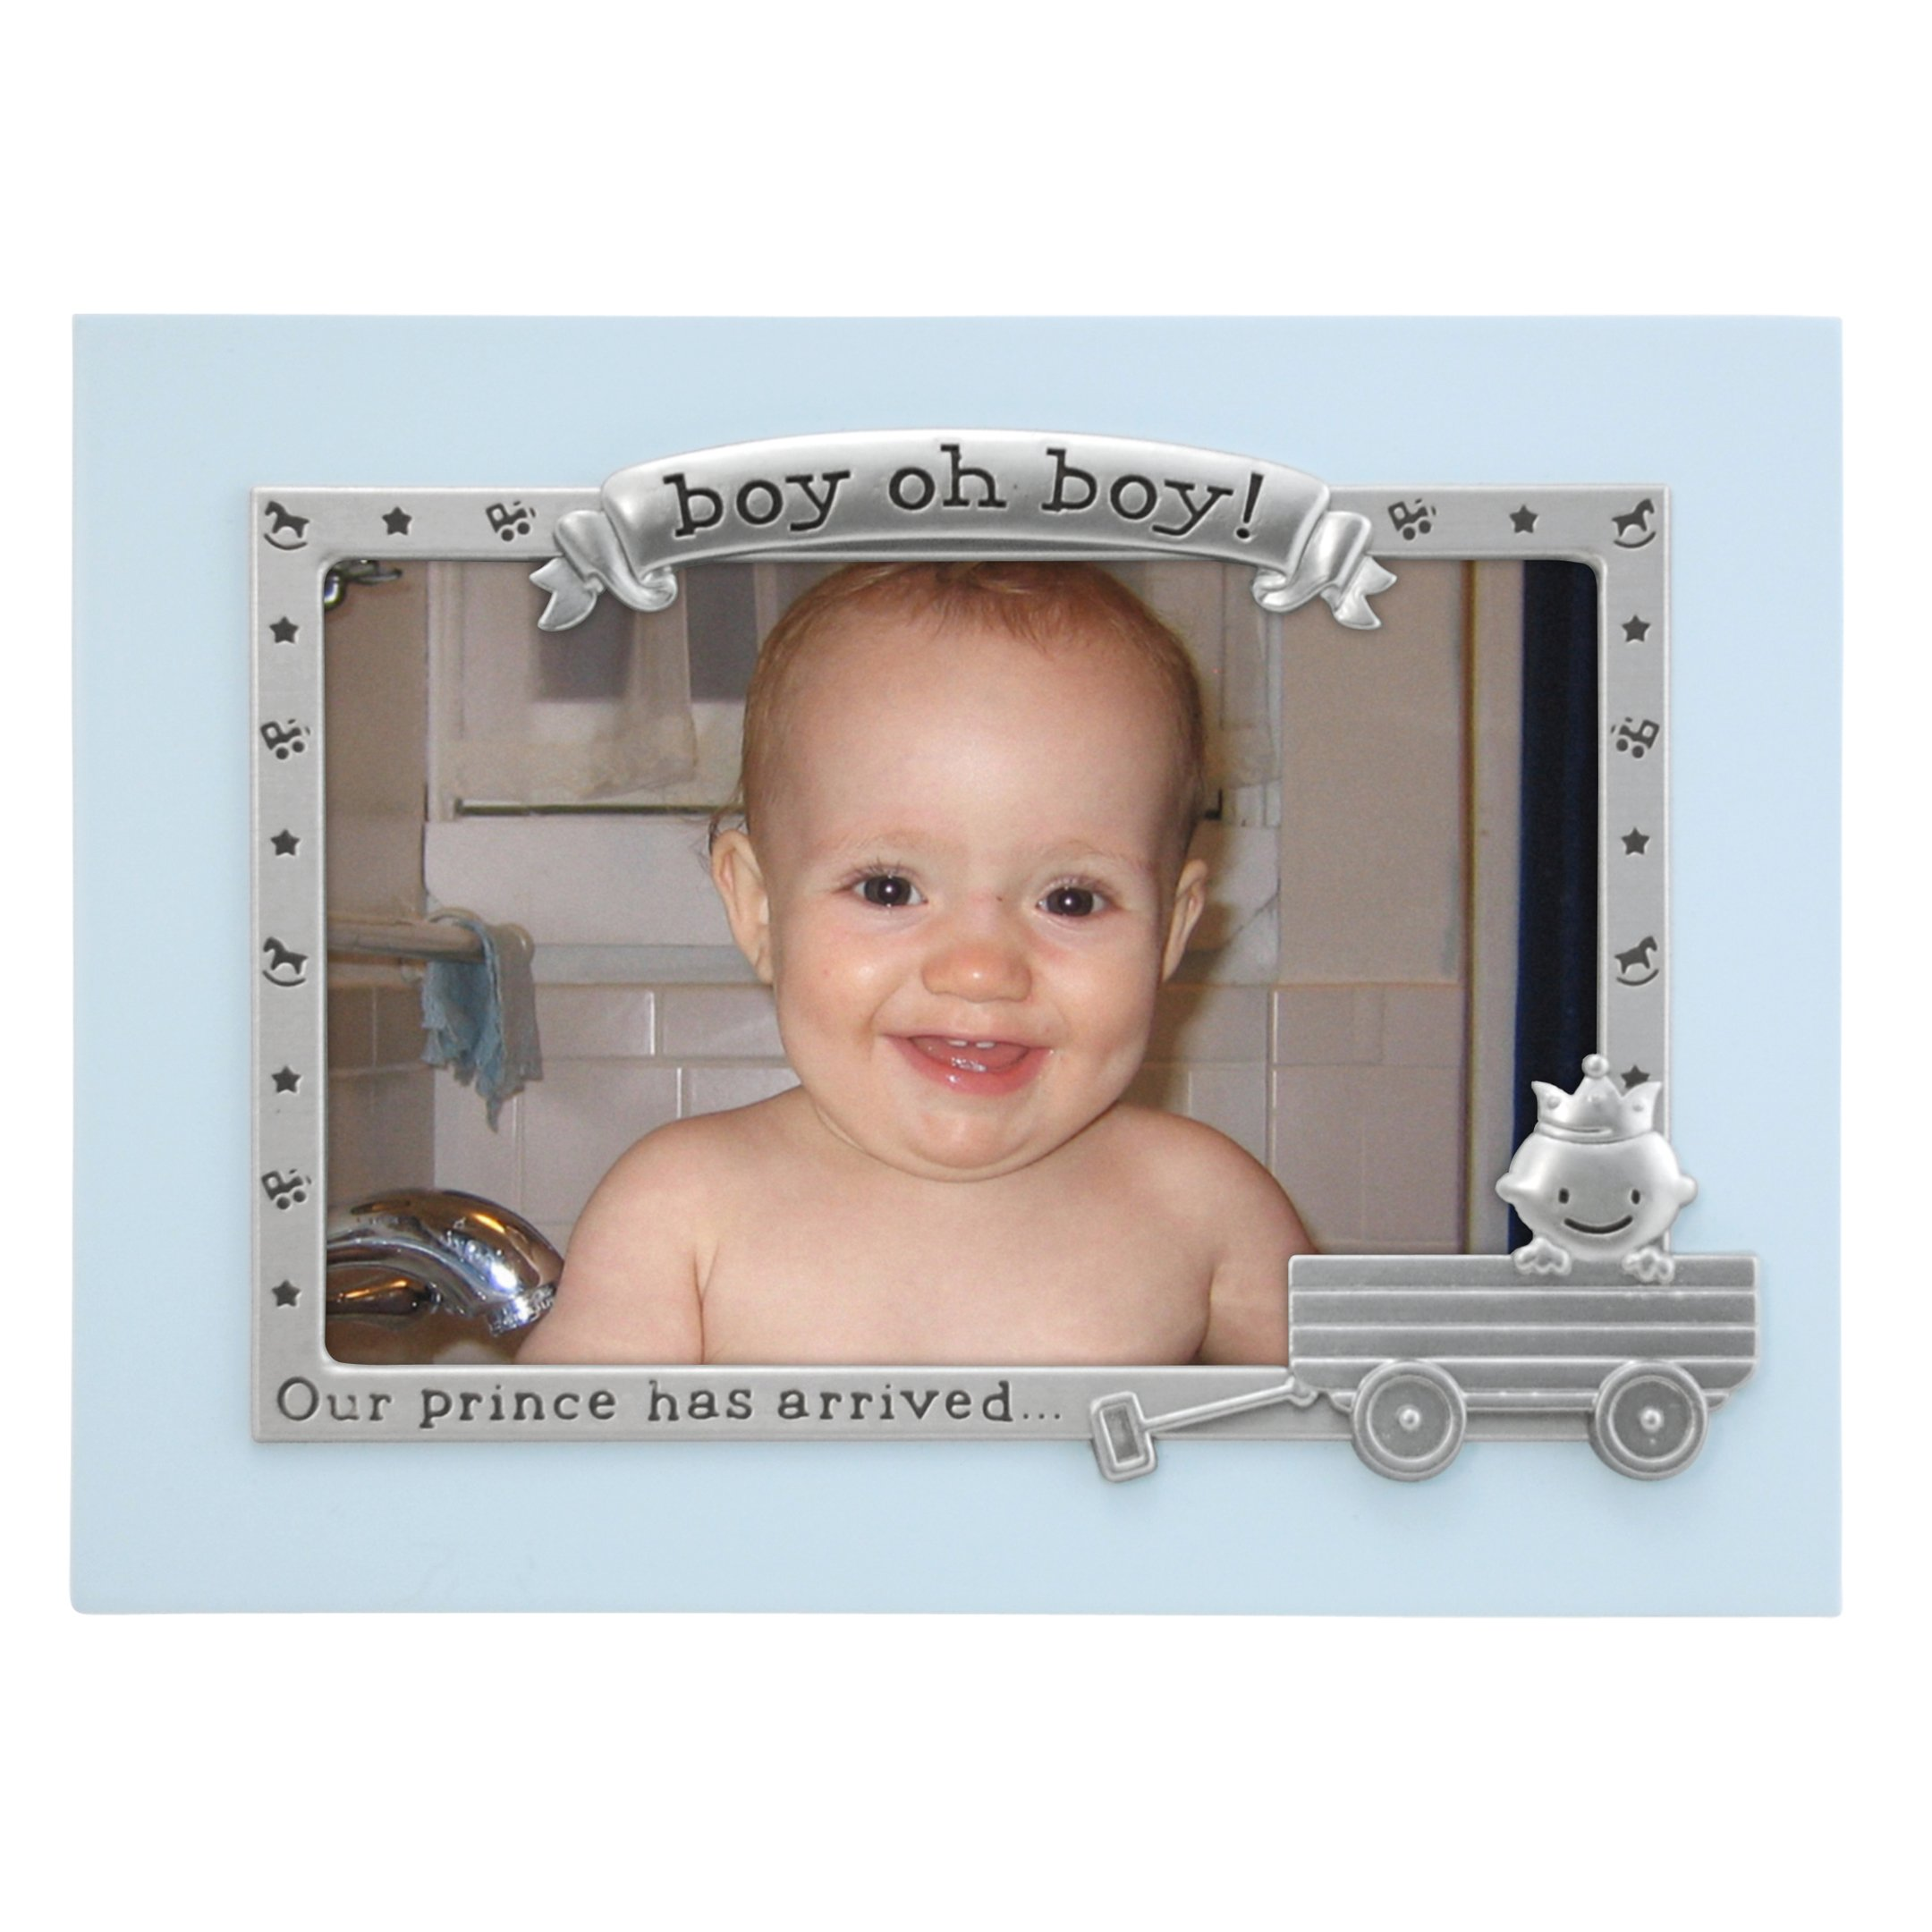 Malden International Designs Boy Oh Boy Juvenile Blue with Silver Metal Border Picture Frame, 4x6, Blue by Malden International Designs (Image #1)